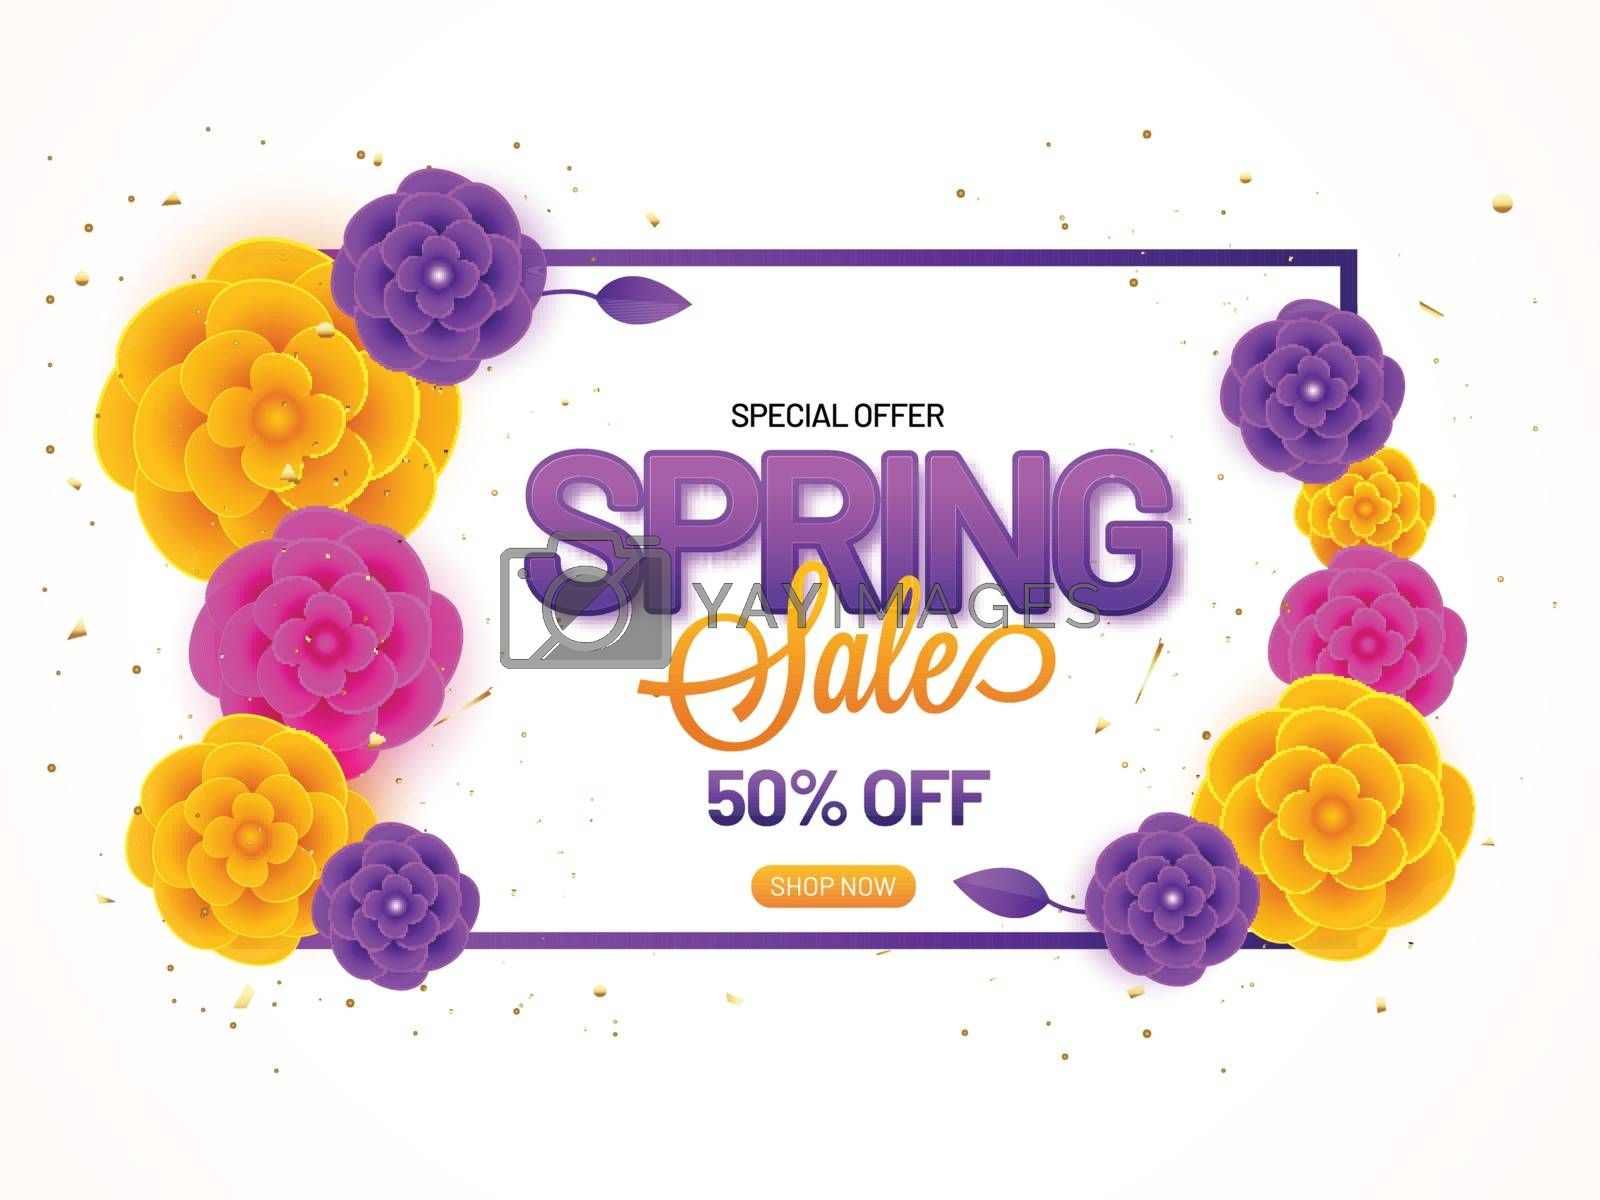 Royalty free image of Spring Sale banner or poster design with 50% discount offer and  by aispl